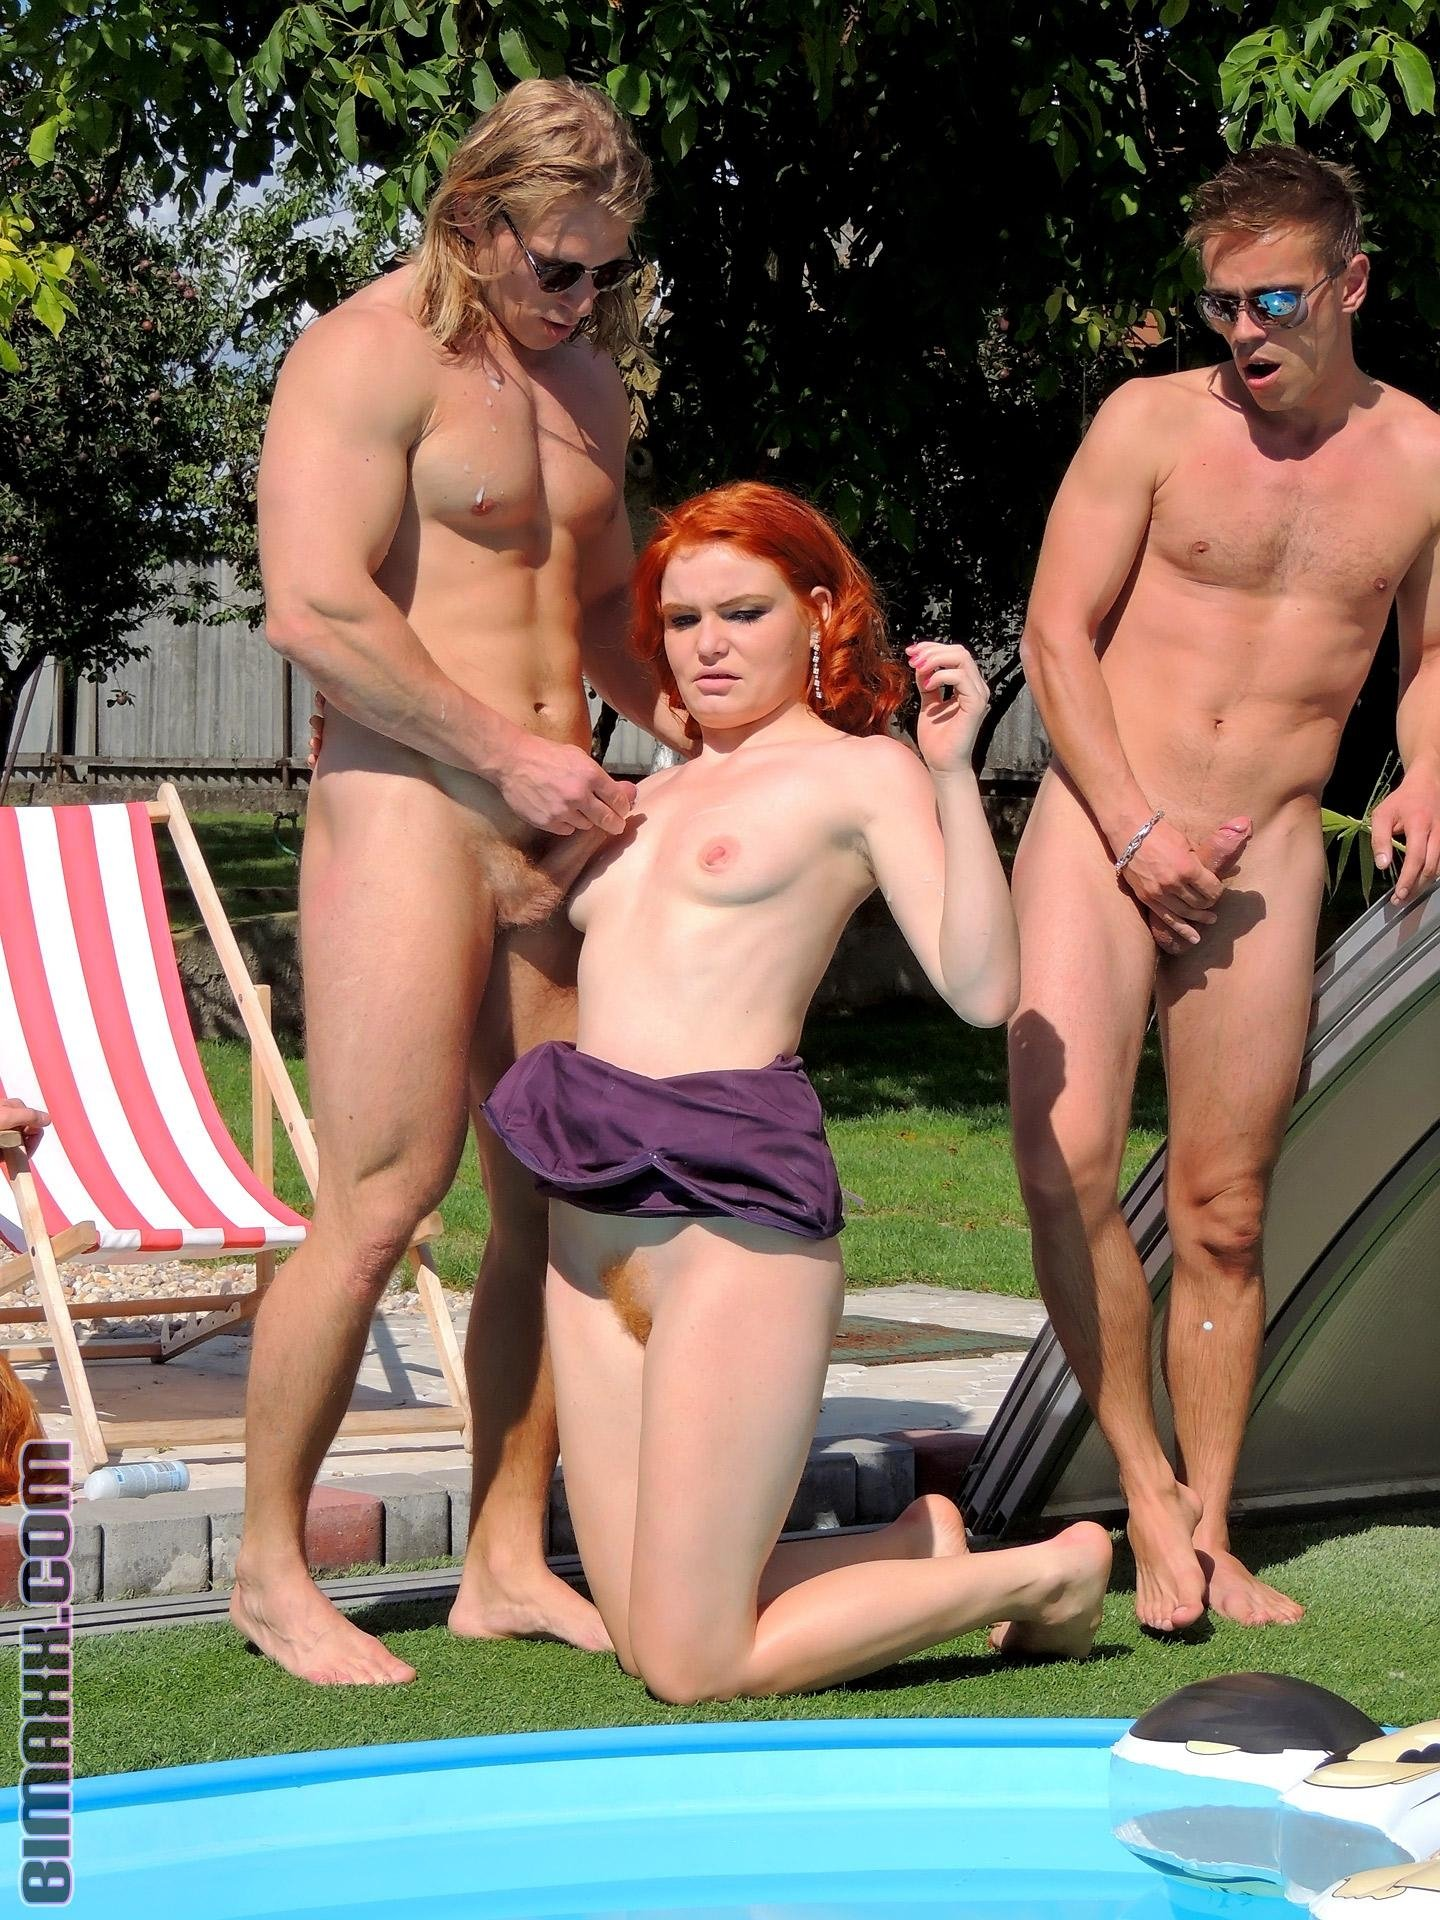 hairy ginger men naked